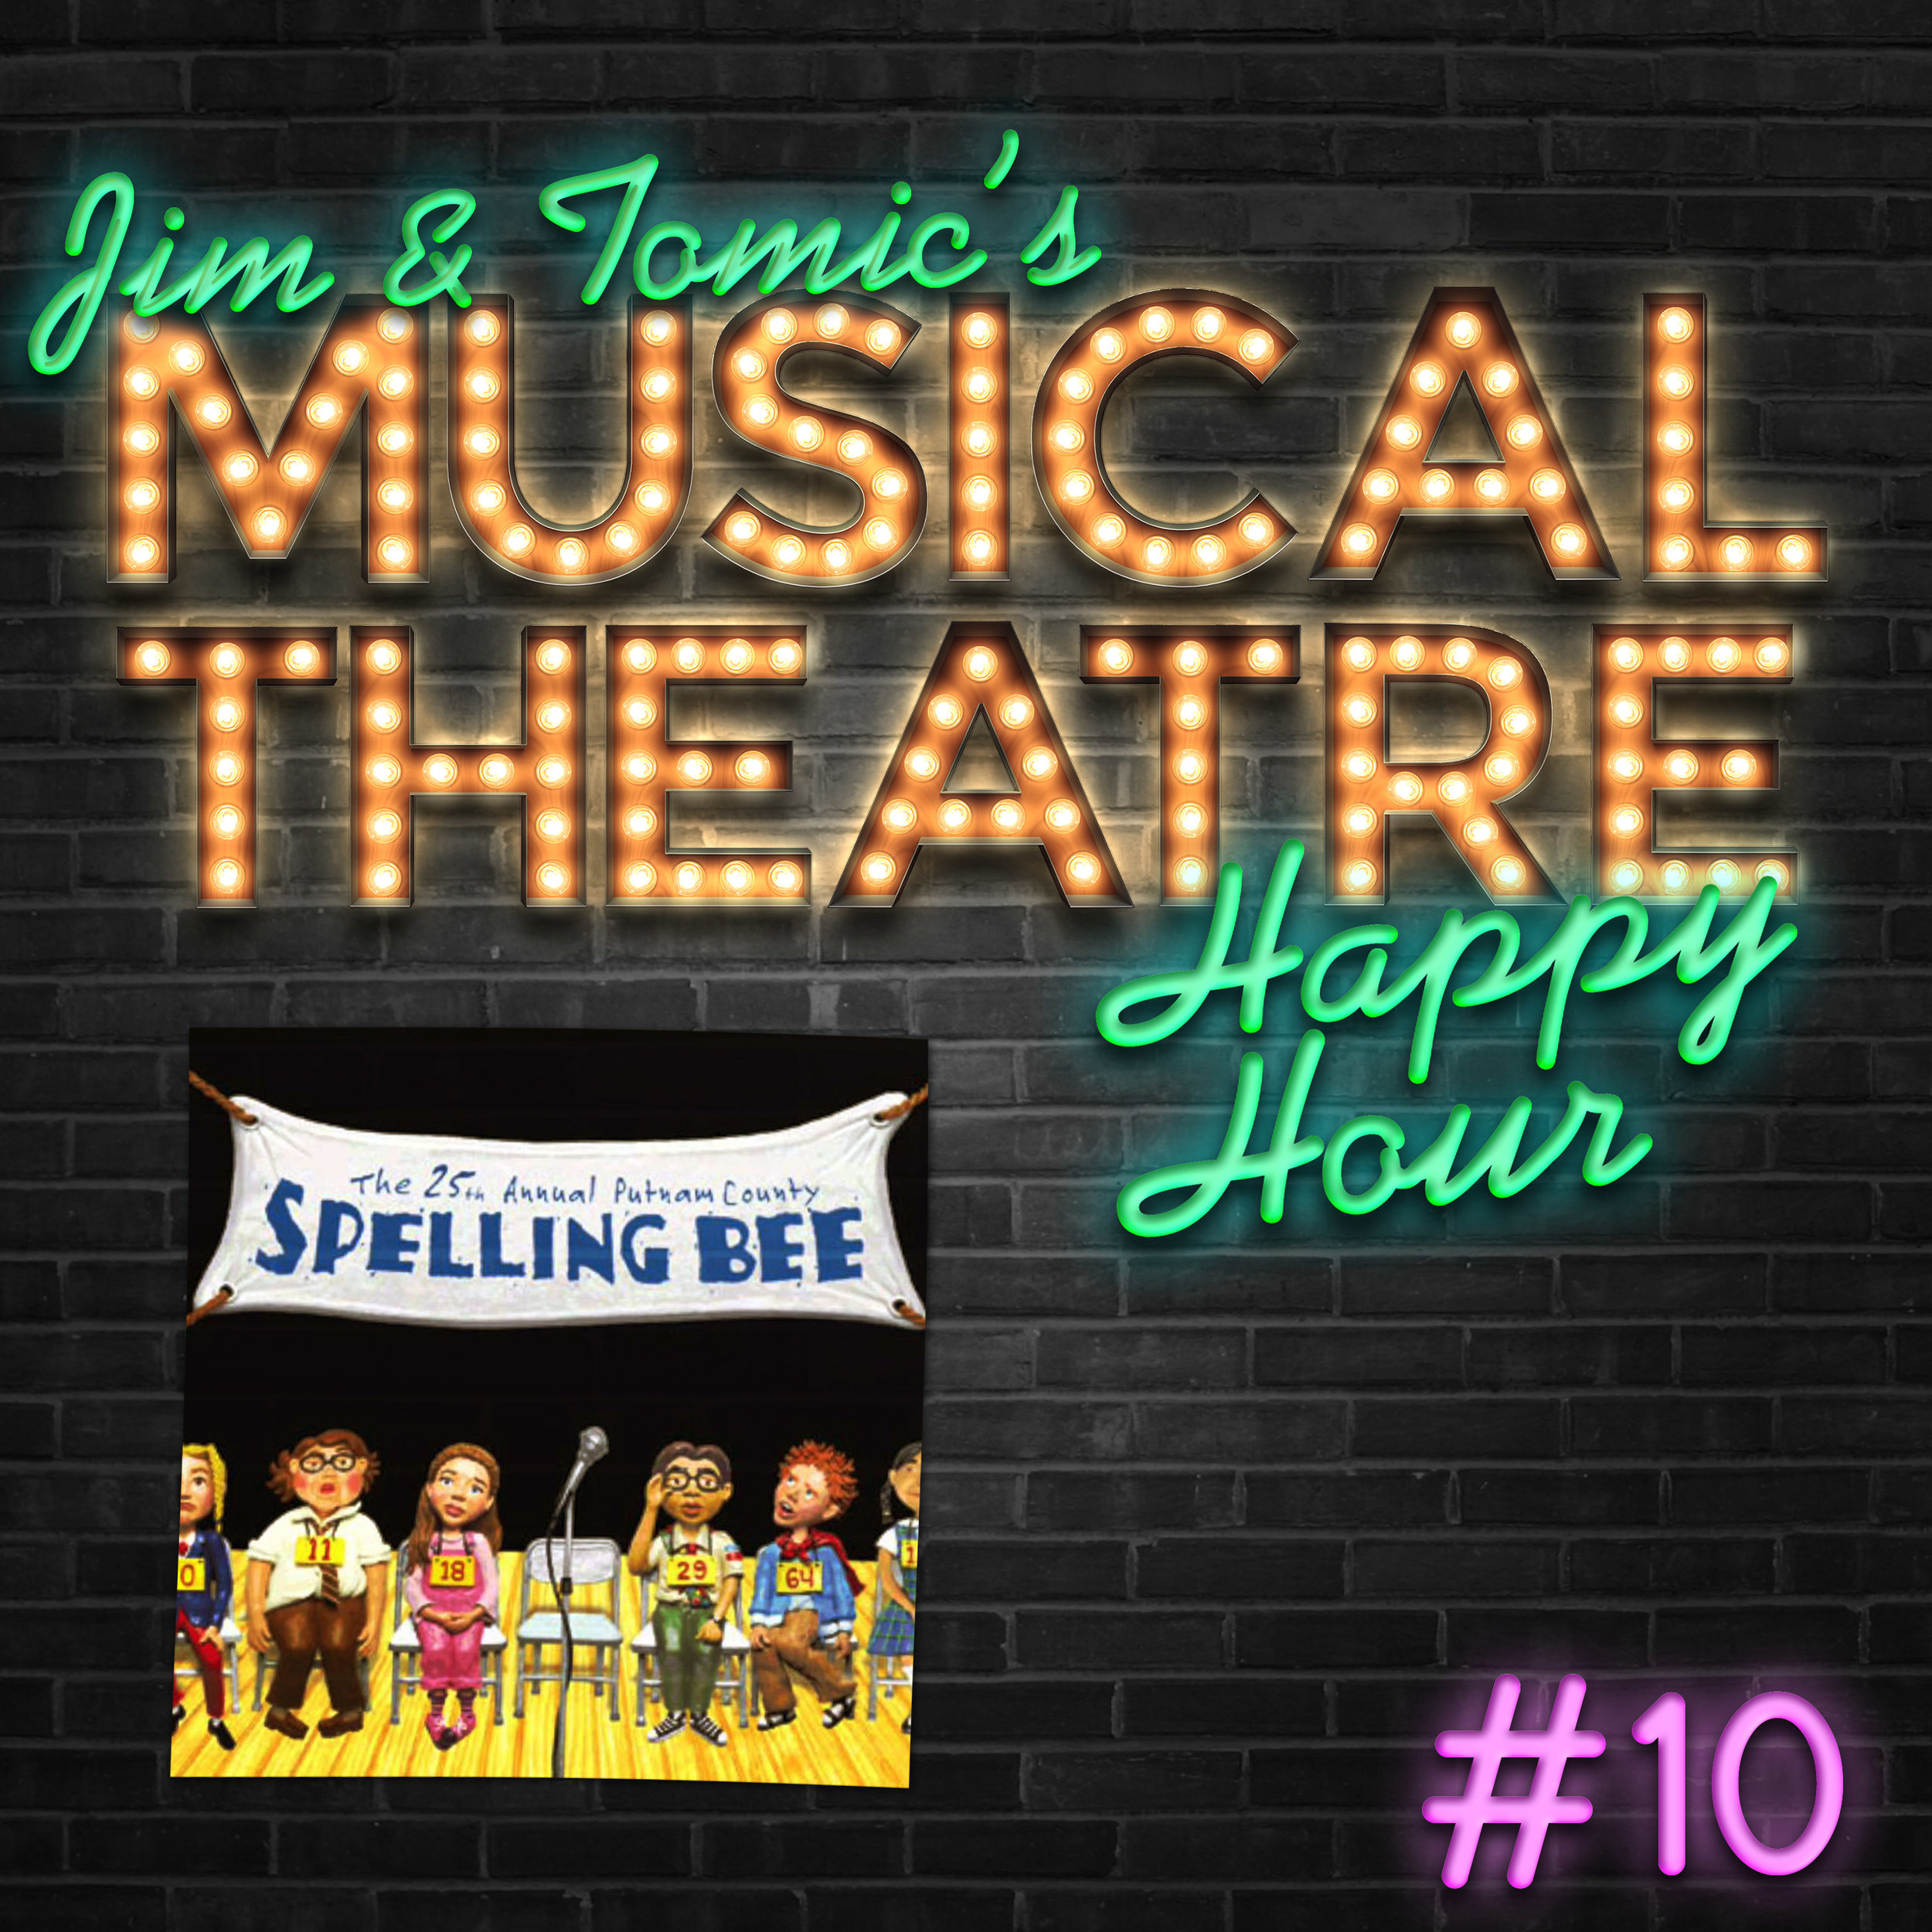 10 Happy Hour #10- A Spelling Bee Shindig - The 25th Annual Putnam County Spelling Bee.jpg